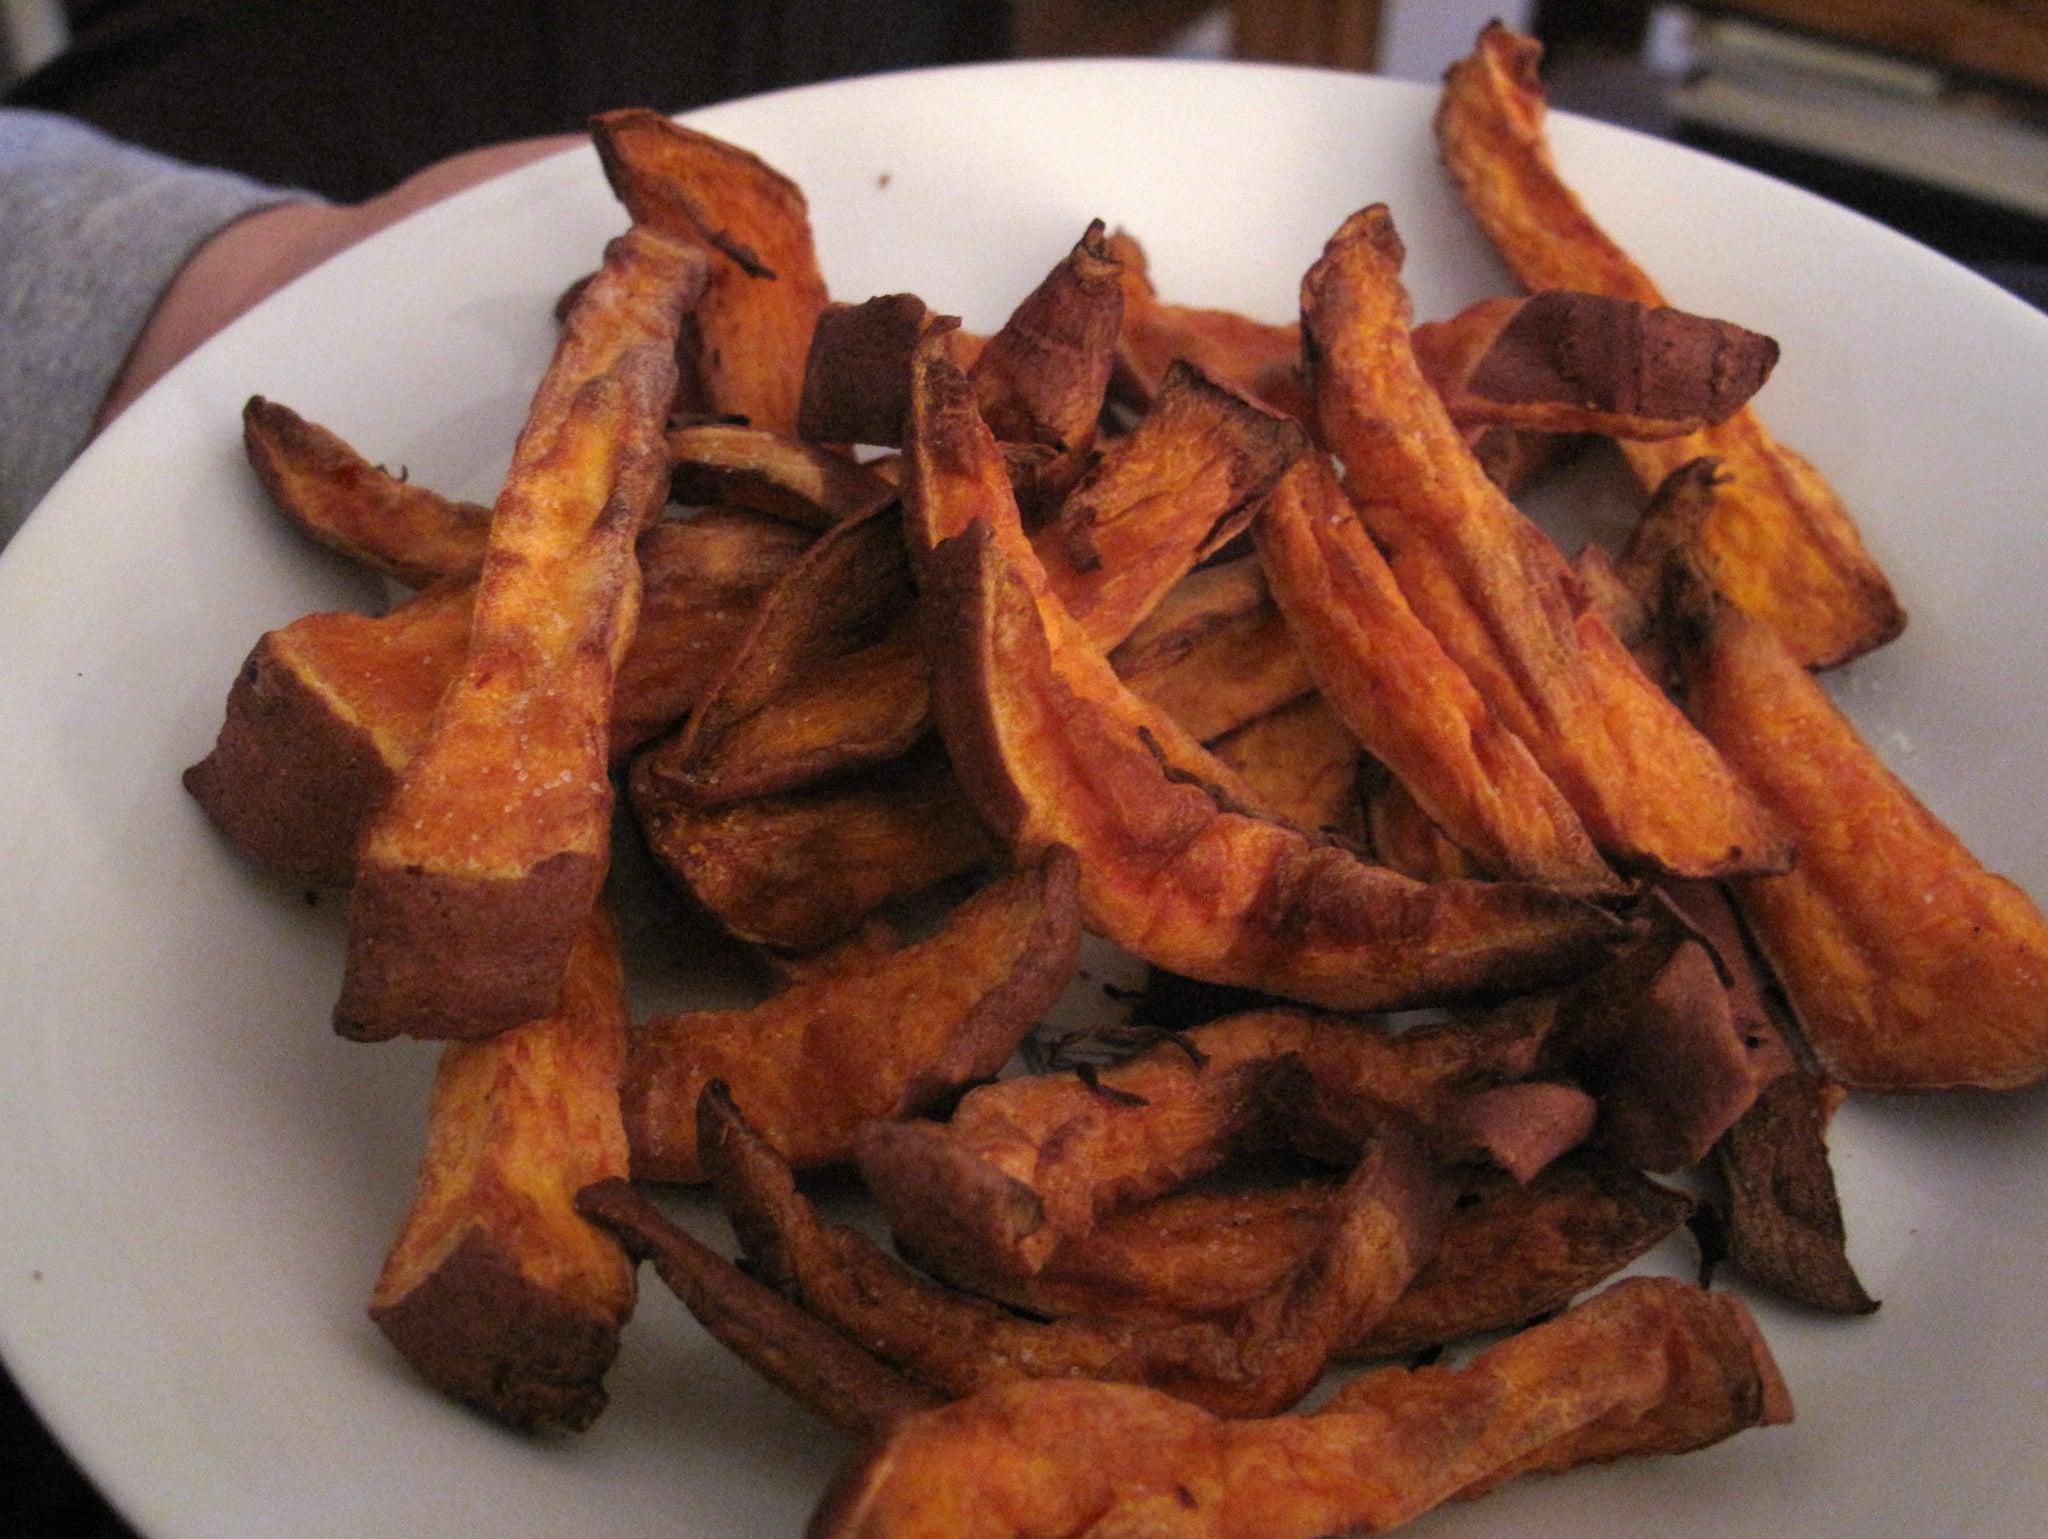 Sweet potato fries went on trial, too.